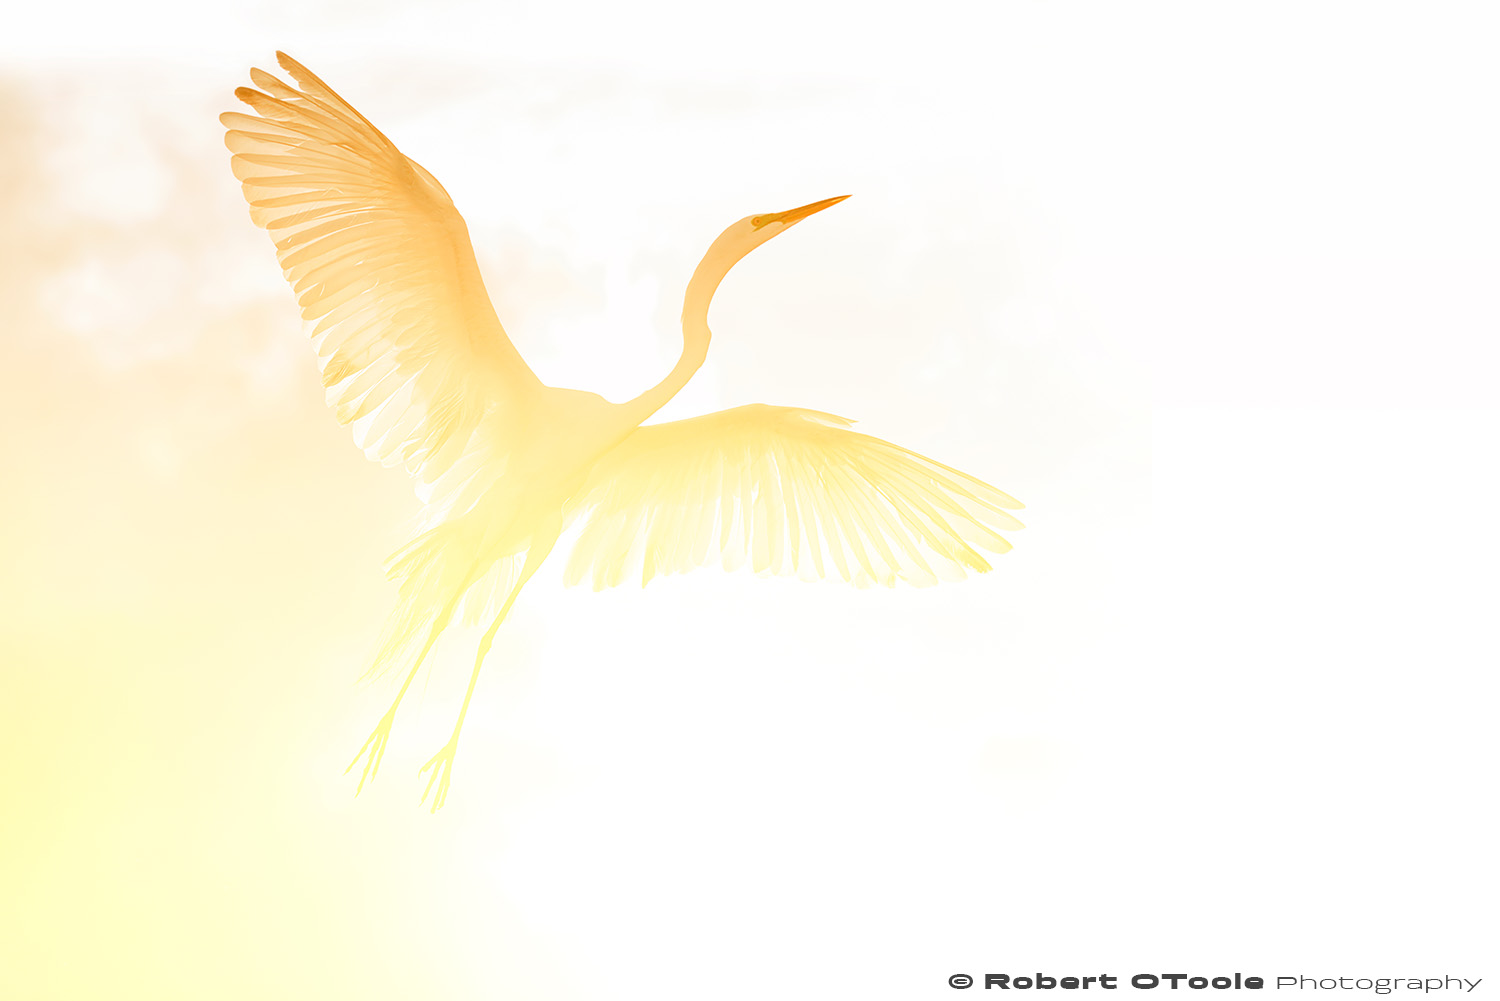 Great egret and a glowing sunset Sigma 120-300 S @120mm Nikon D810 1/1250 f/5.6 ISO 400 manual mode SB800 flash